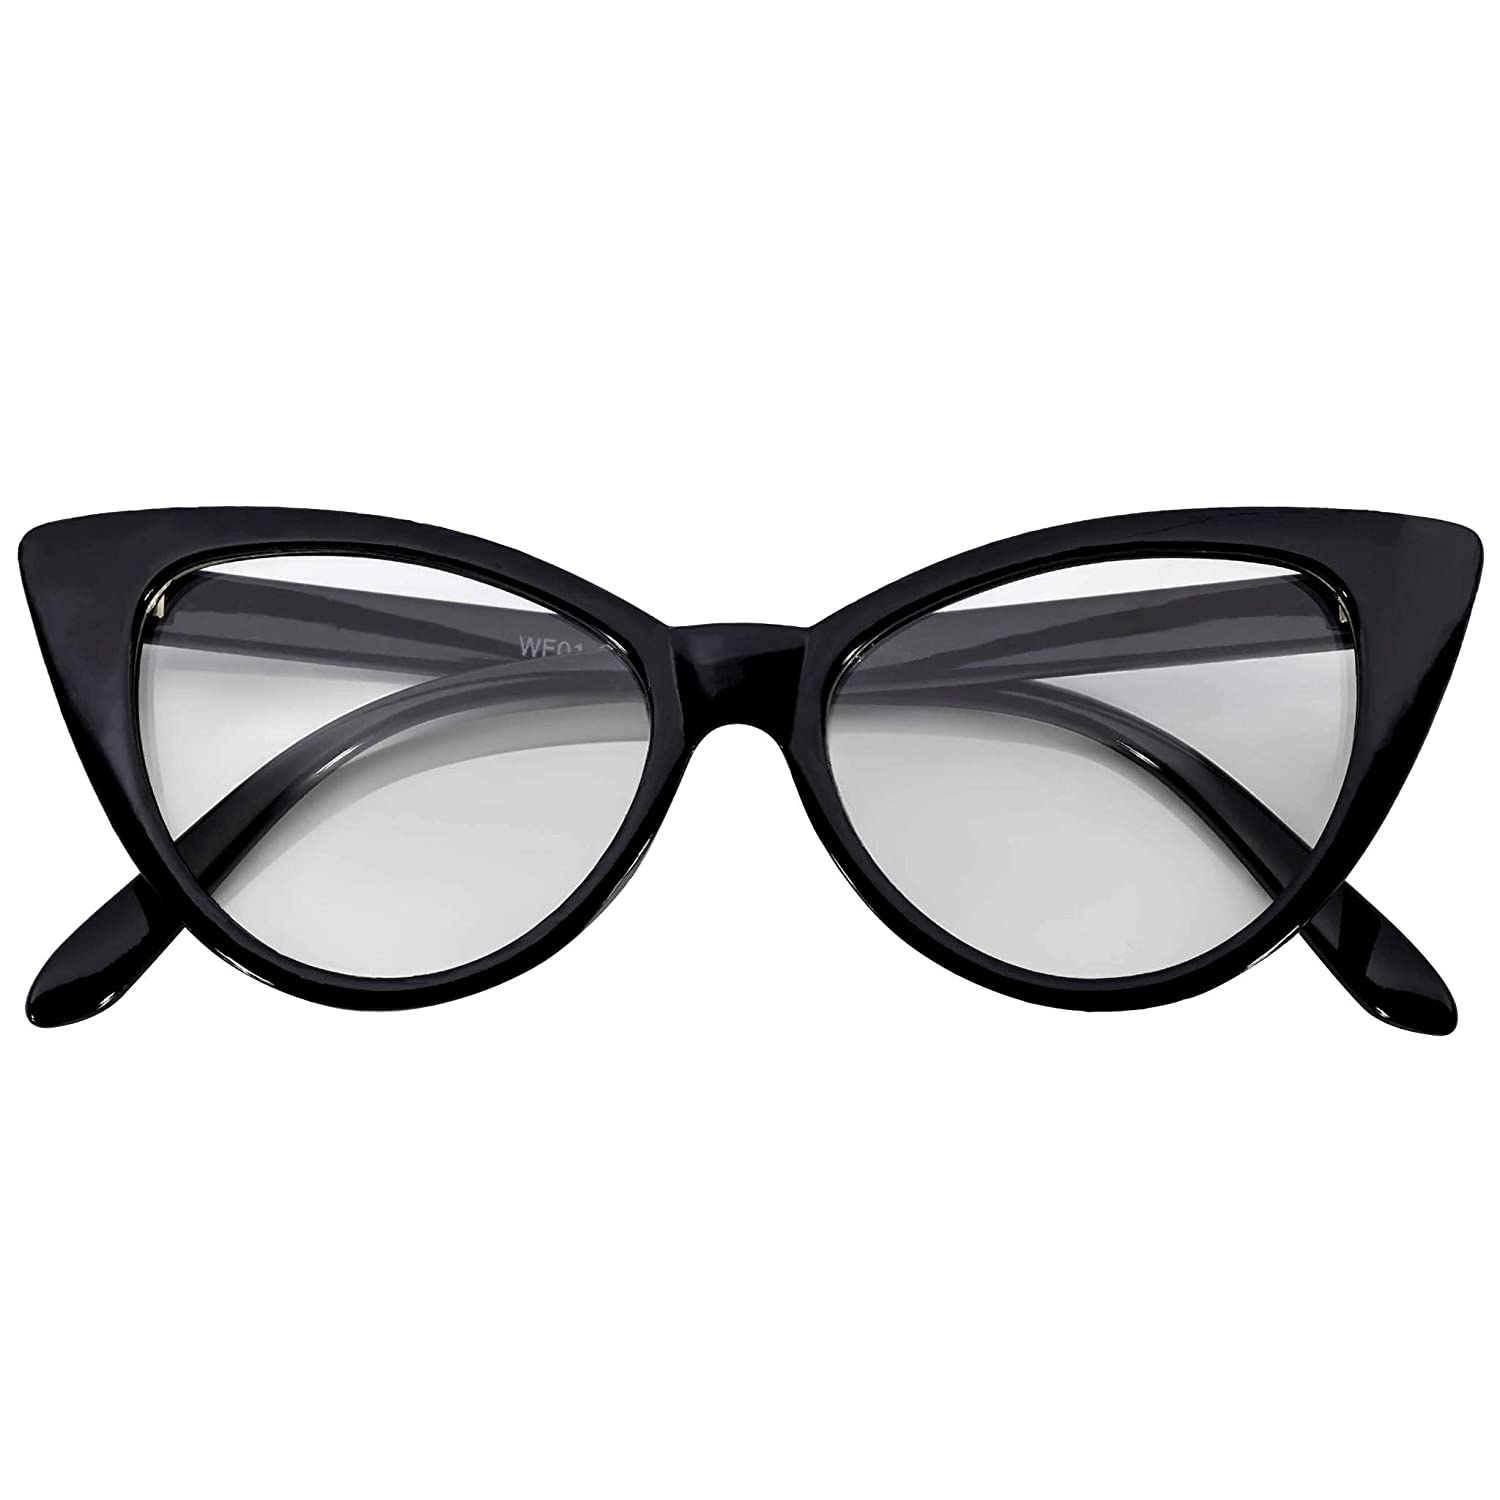 4e922ad87677e Amazon.com  OWL Cateye Glasses for Women Vintage Retro 1950 s Shades Black  Frame Clear Lens  Clothing